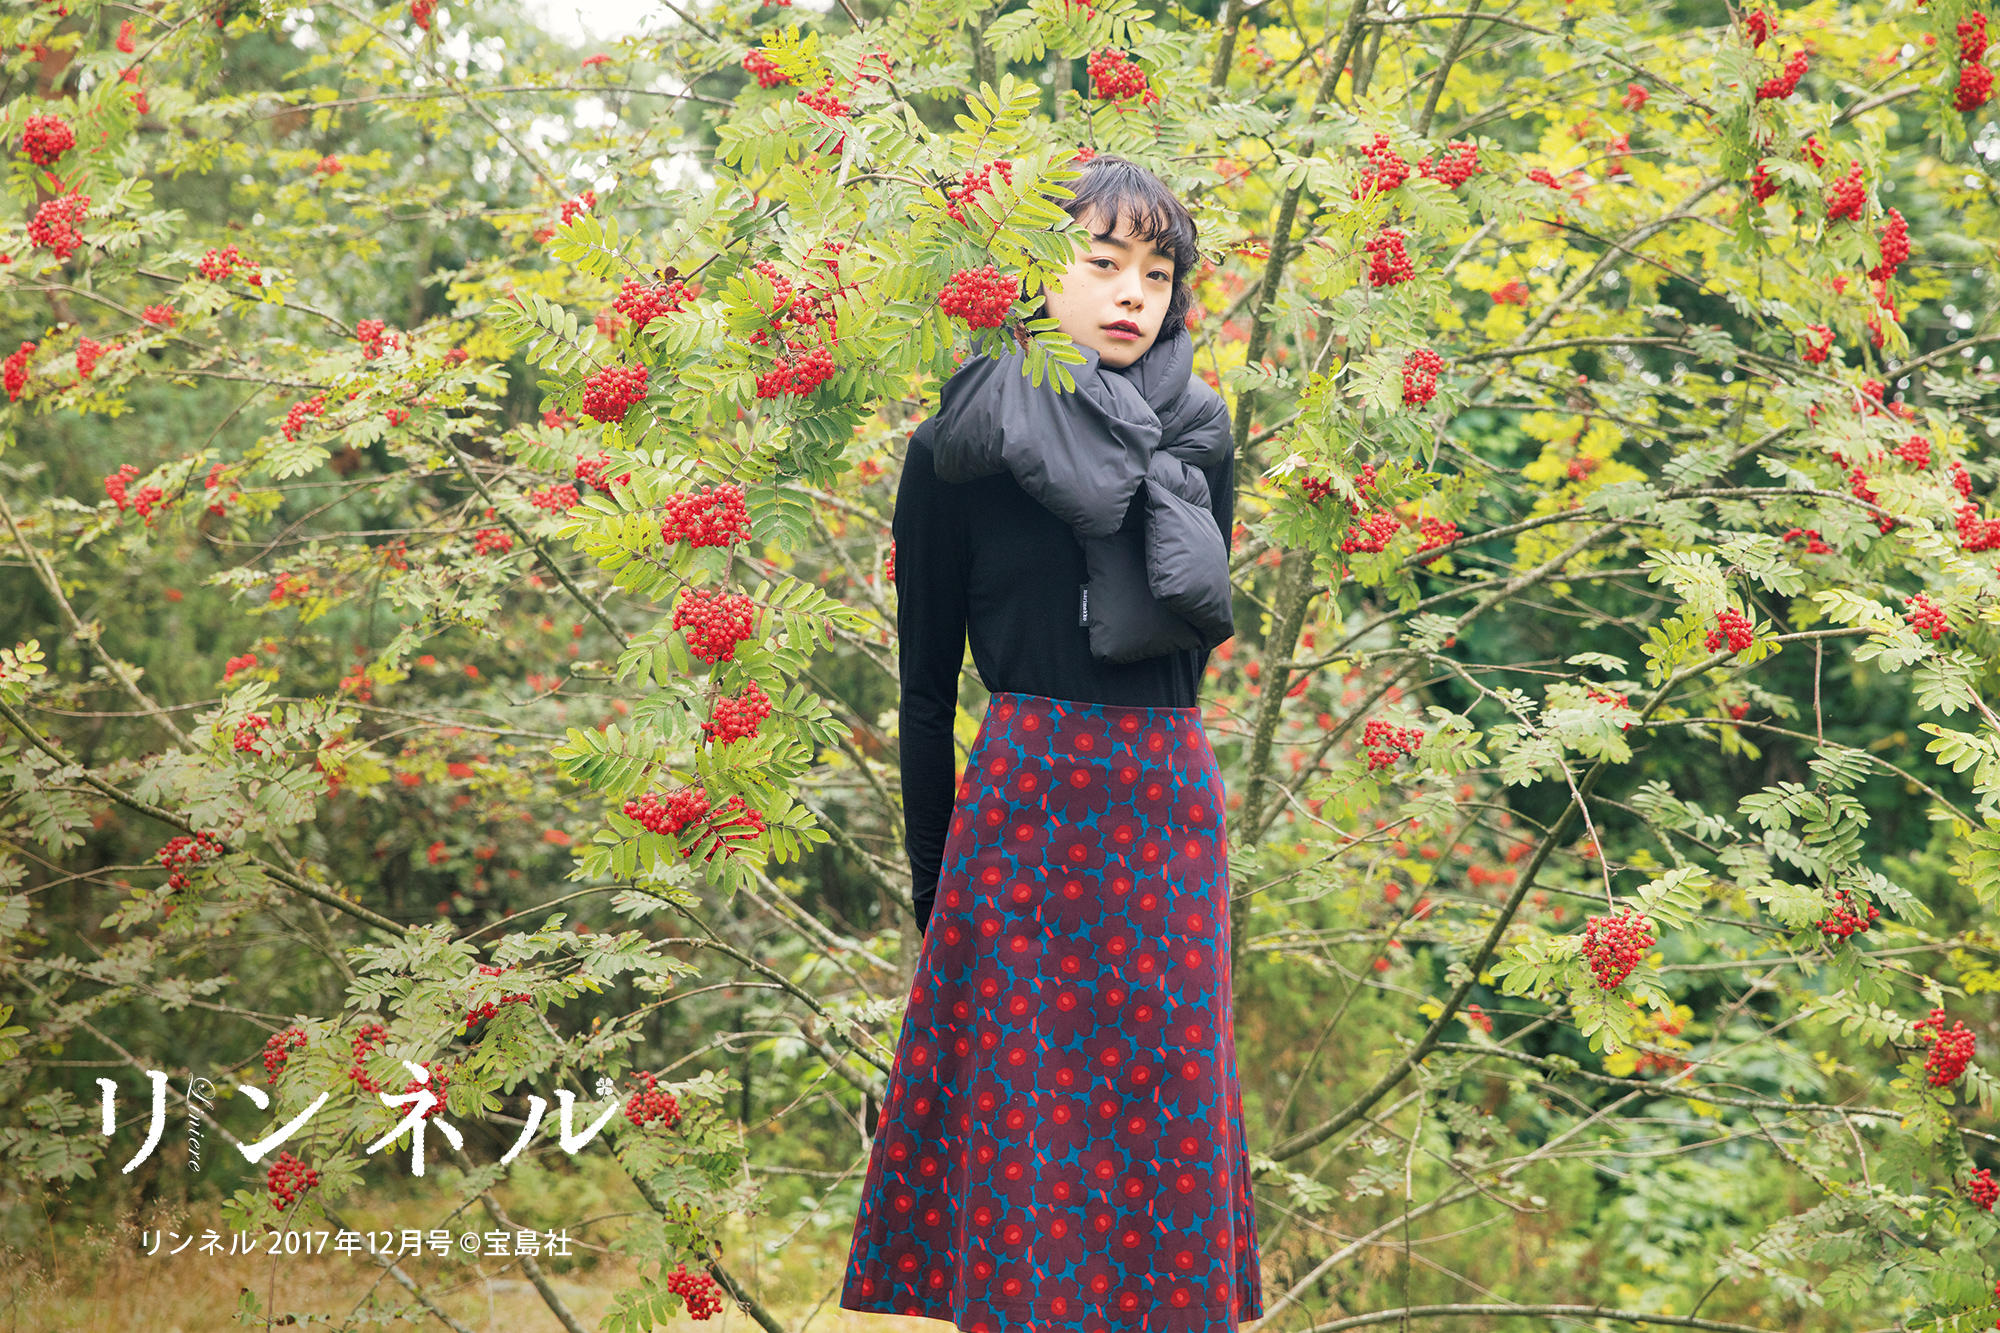 2017 Fall & Winter Images and Styles presented by Liniere